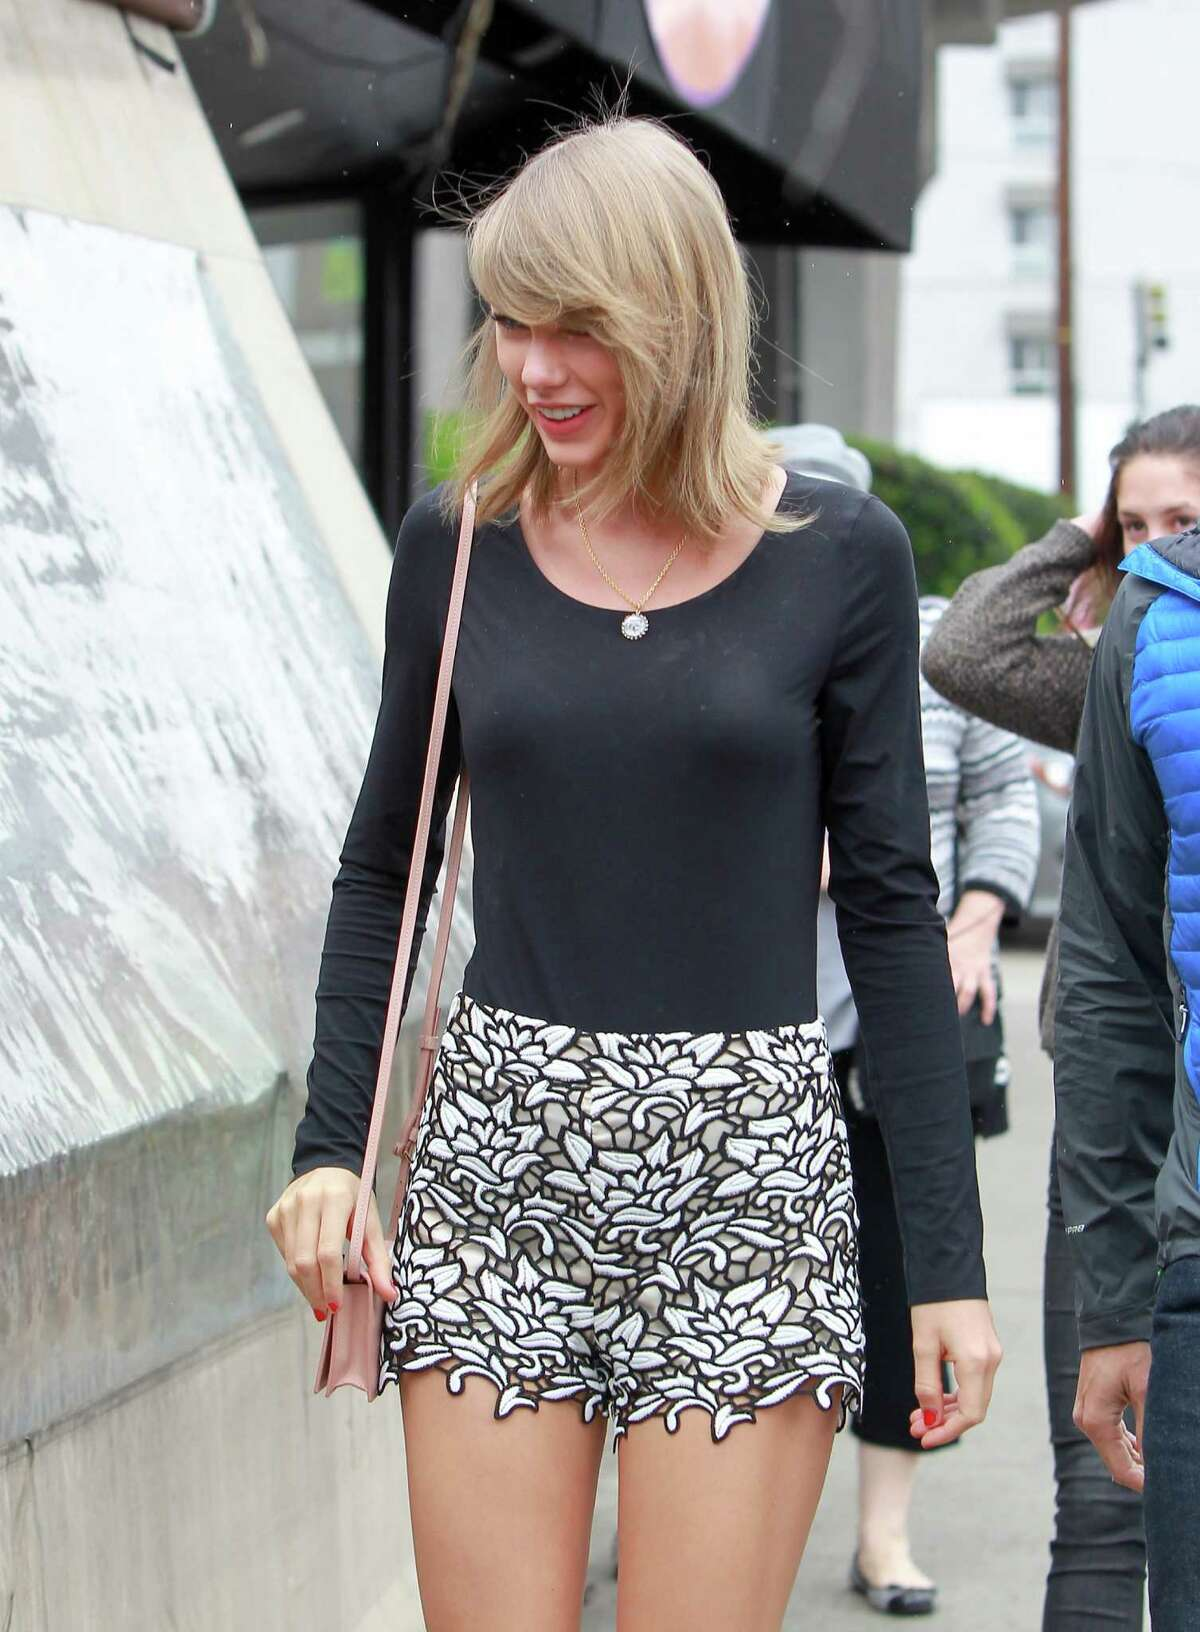 Taylor Swift is seen in Los Angeles on May 08, 2015 in Los Angeles, California.